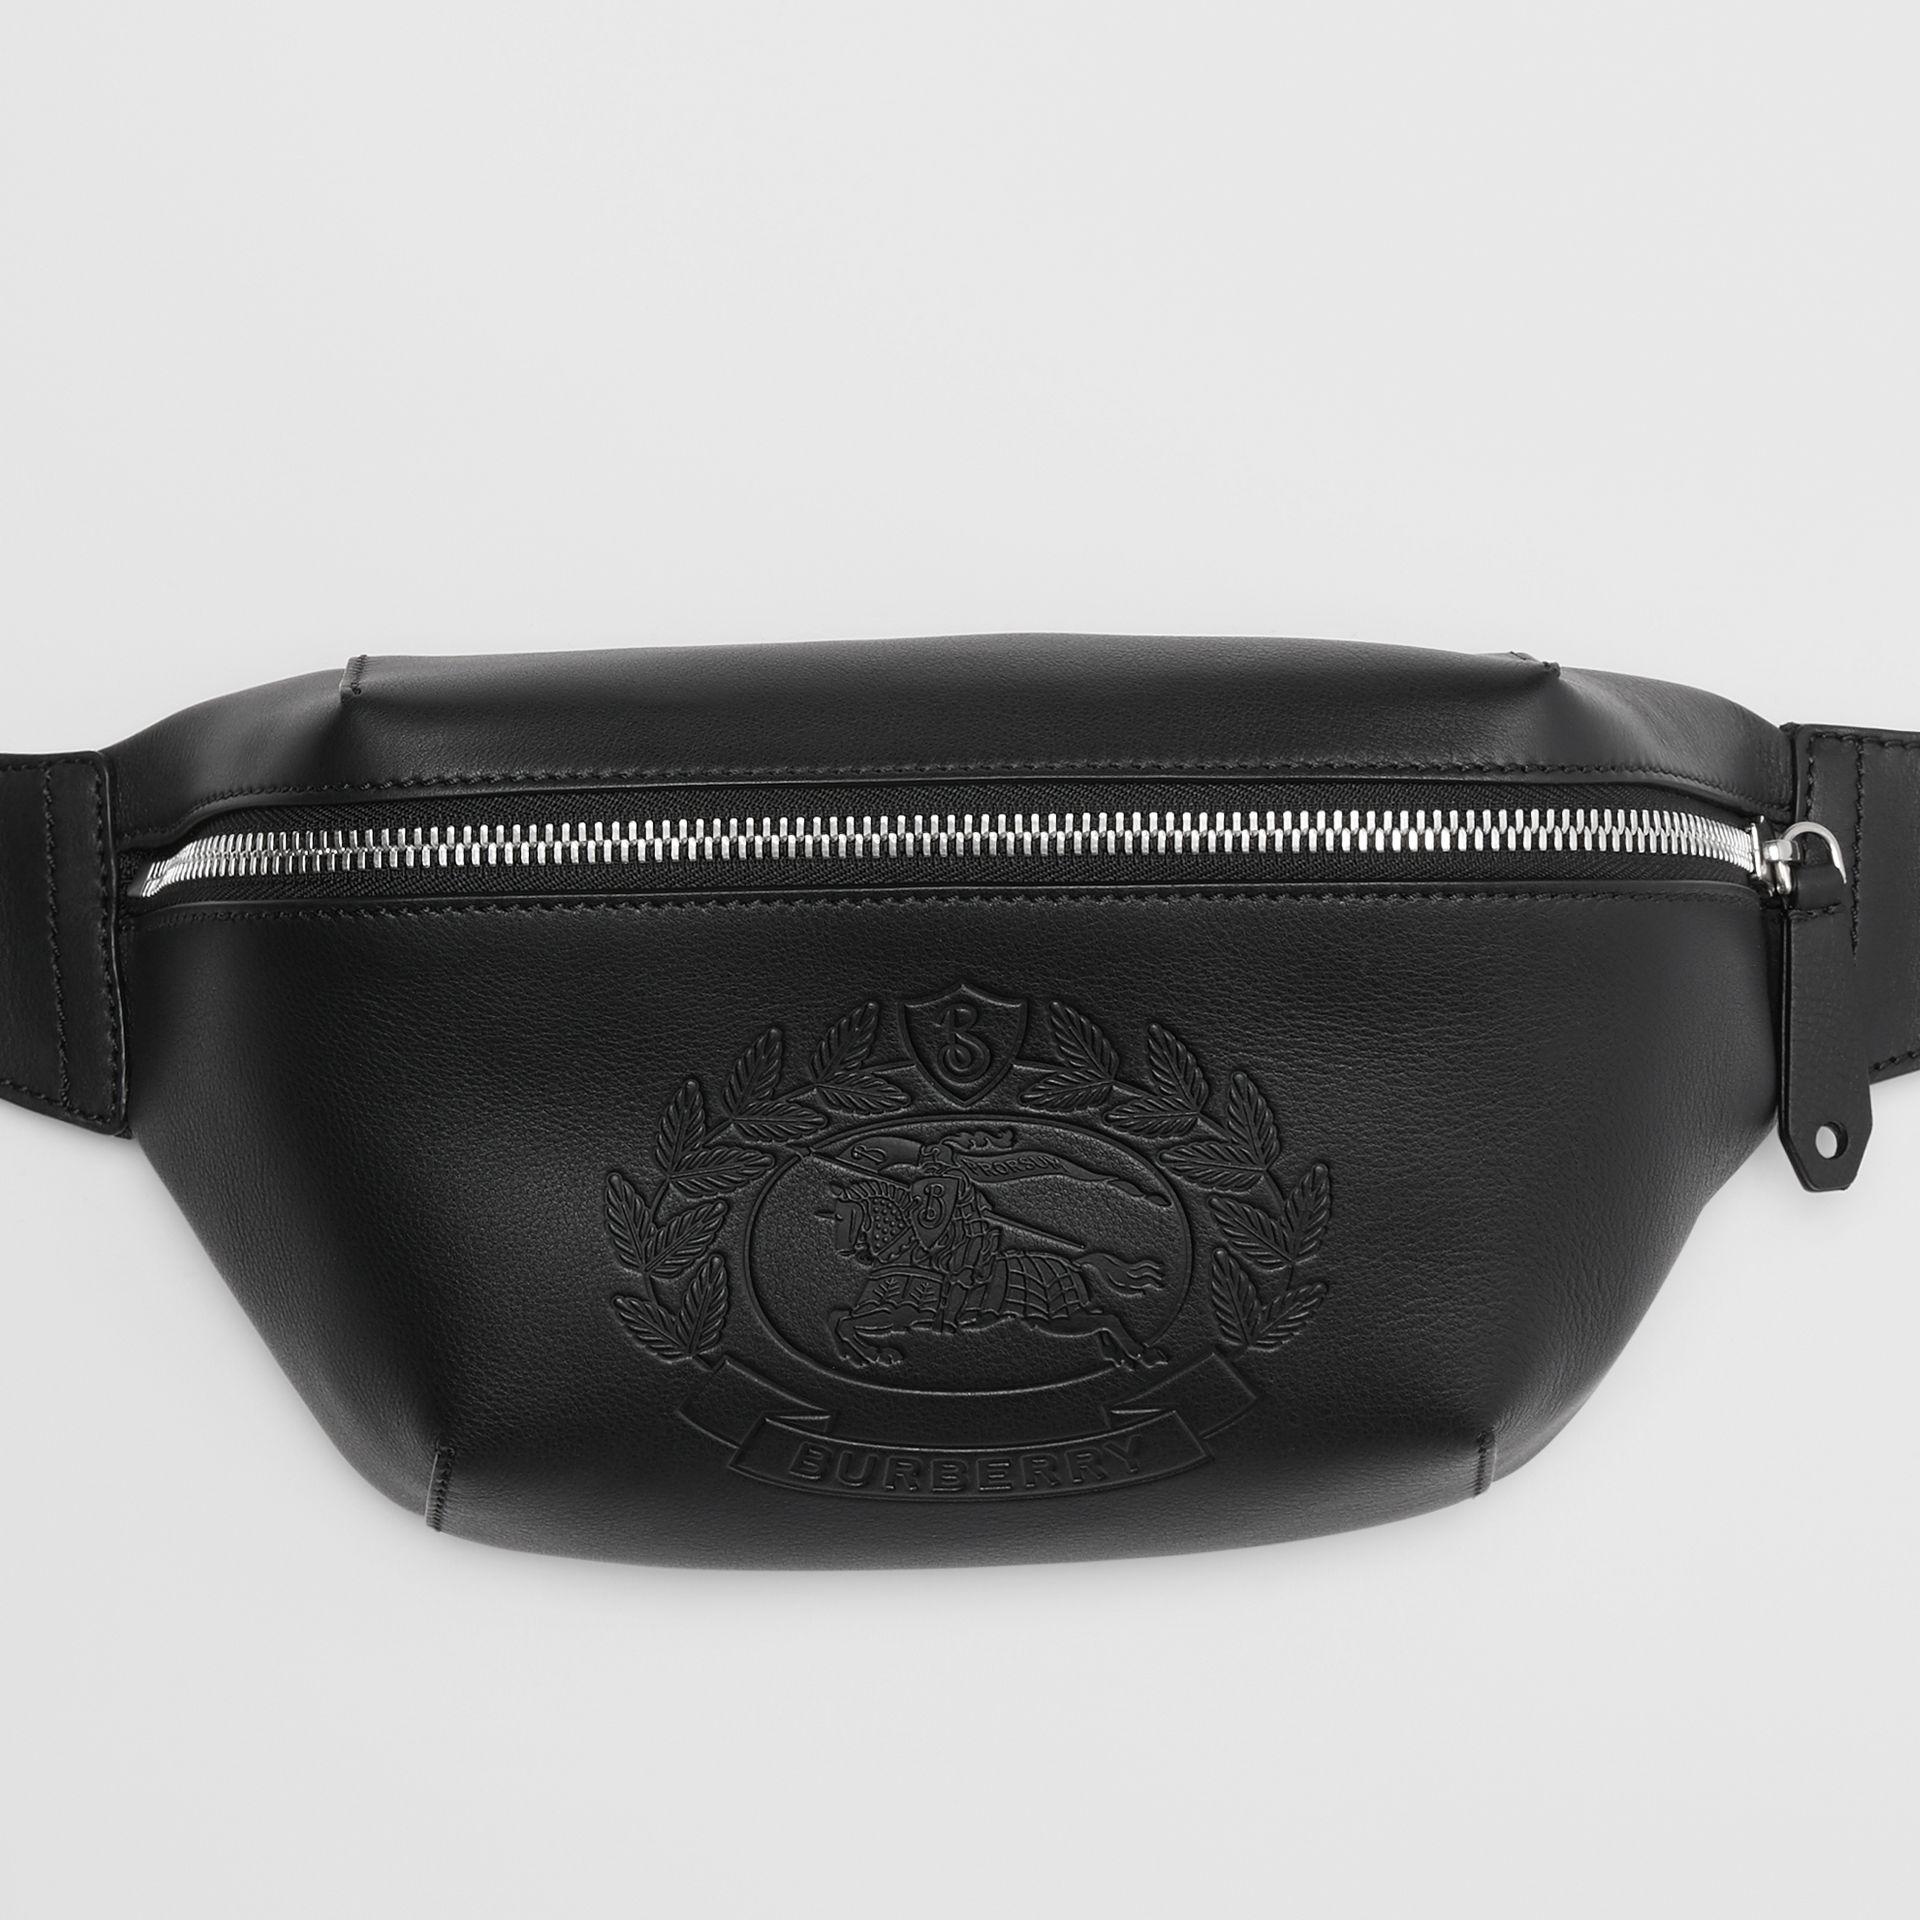 Medium Embossed Crest Leather Bum Bag in Black | Burberry - gallery image 1